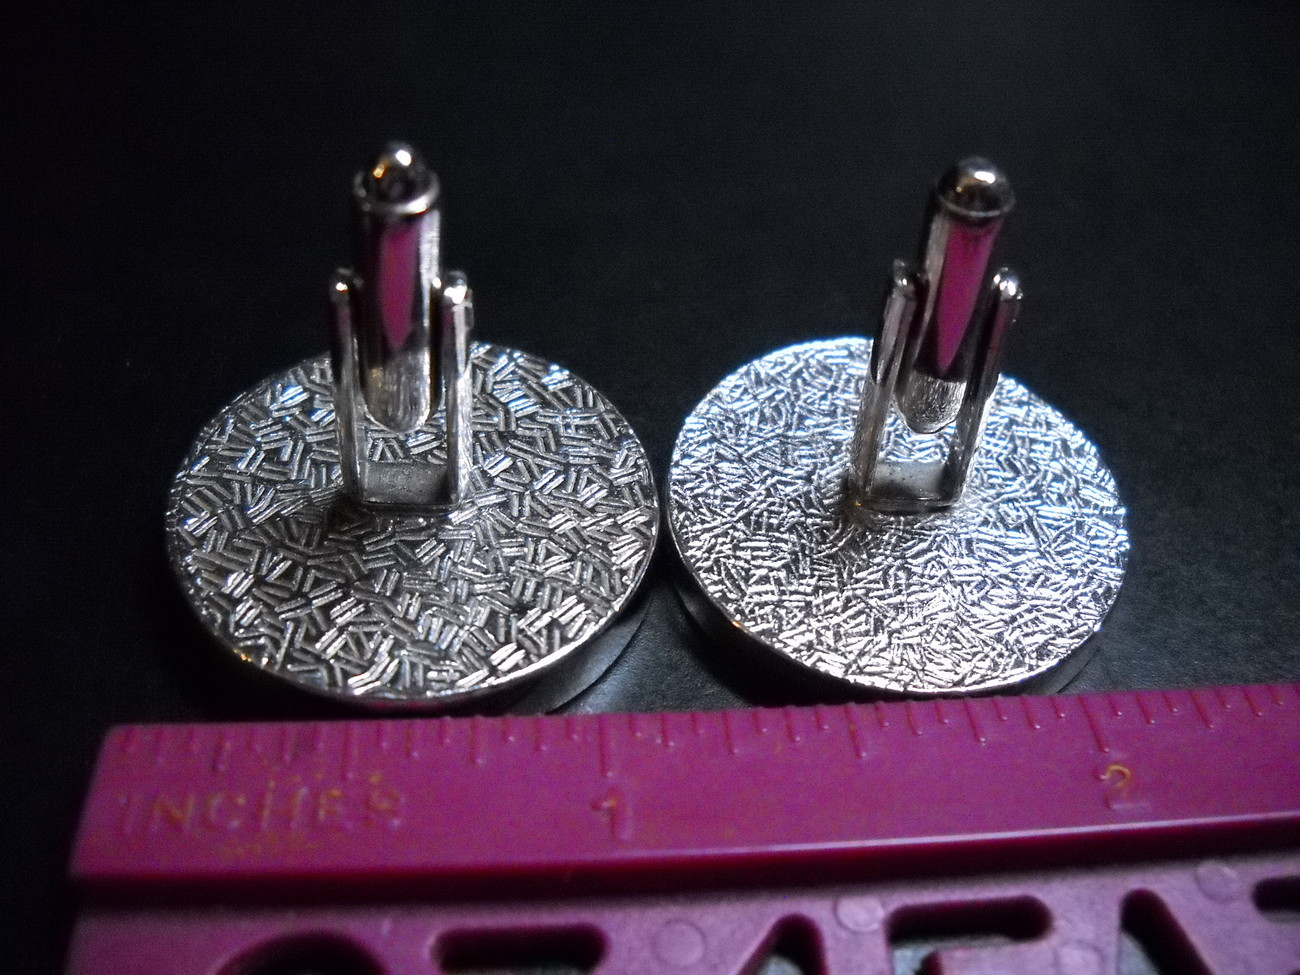 Cuff Links Silver and Black Colored Metal with Rustic Scene No Presentation Box